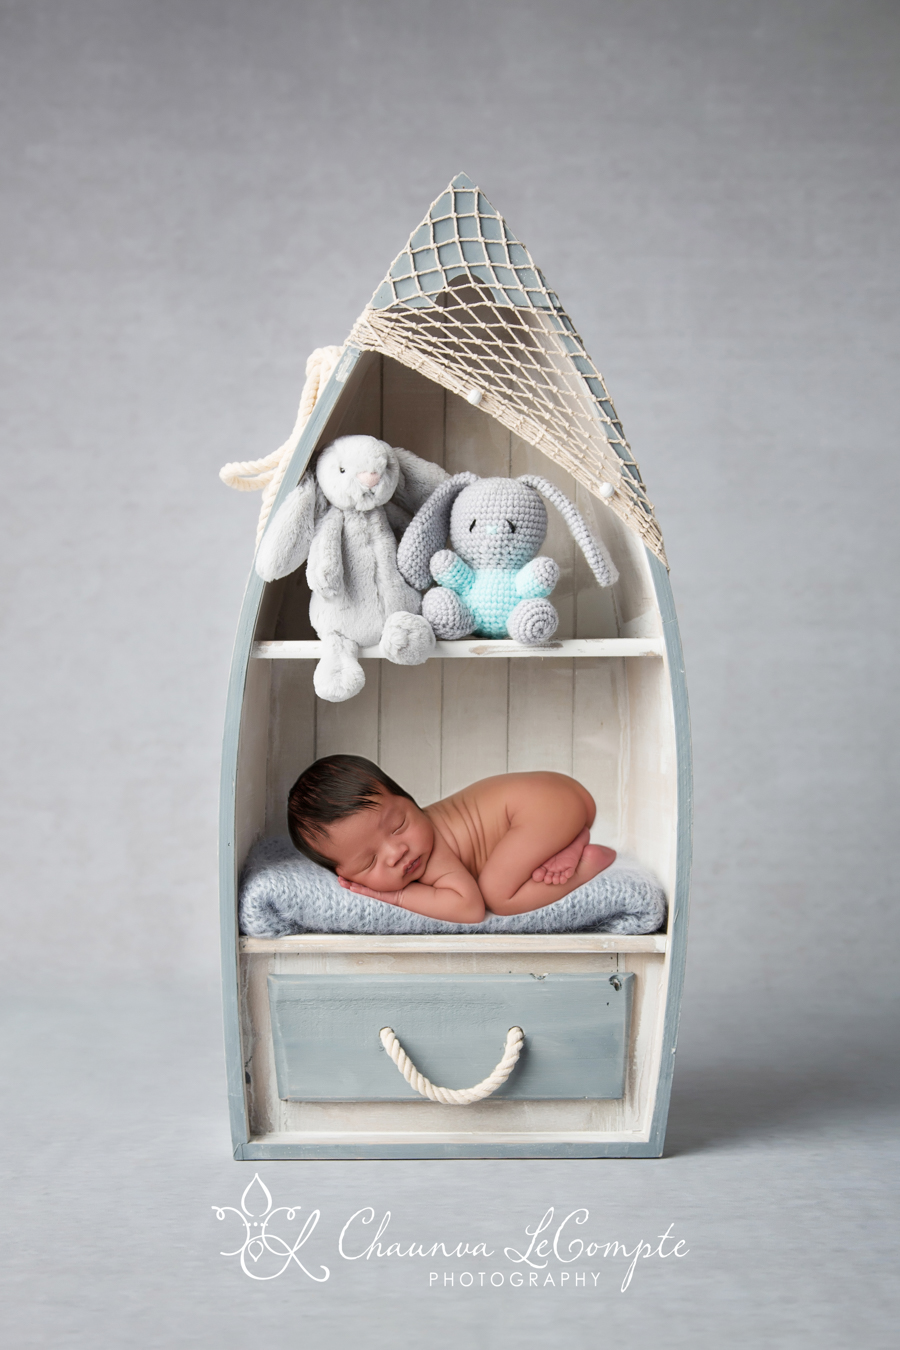 Photograph of newborn baby boy on a shelf with stuffed animals by Dallas / Fort Worth maternity, newborn, and children's photographer Chaunva LeCompte Photography